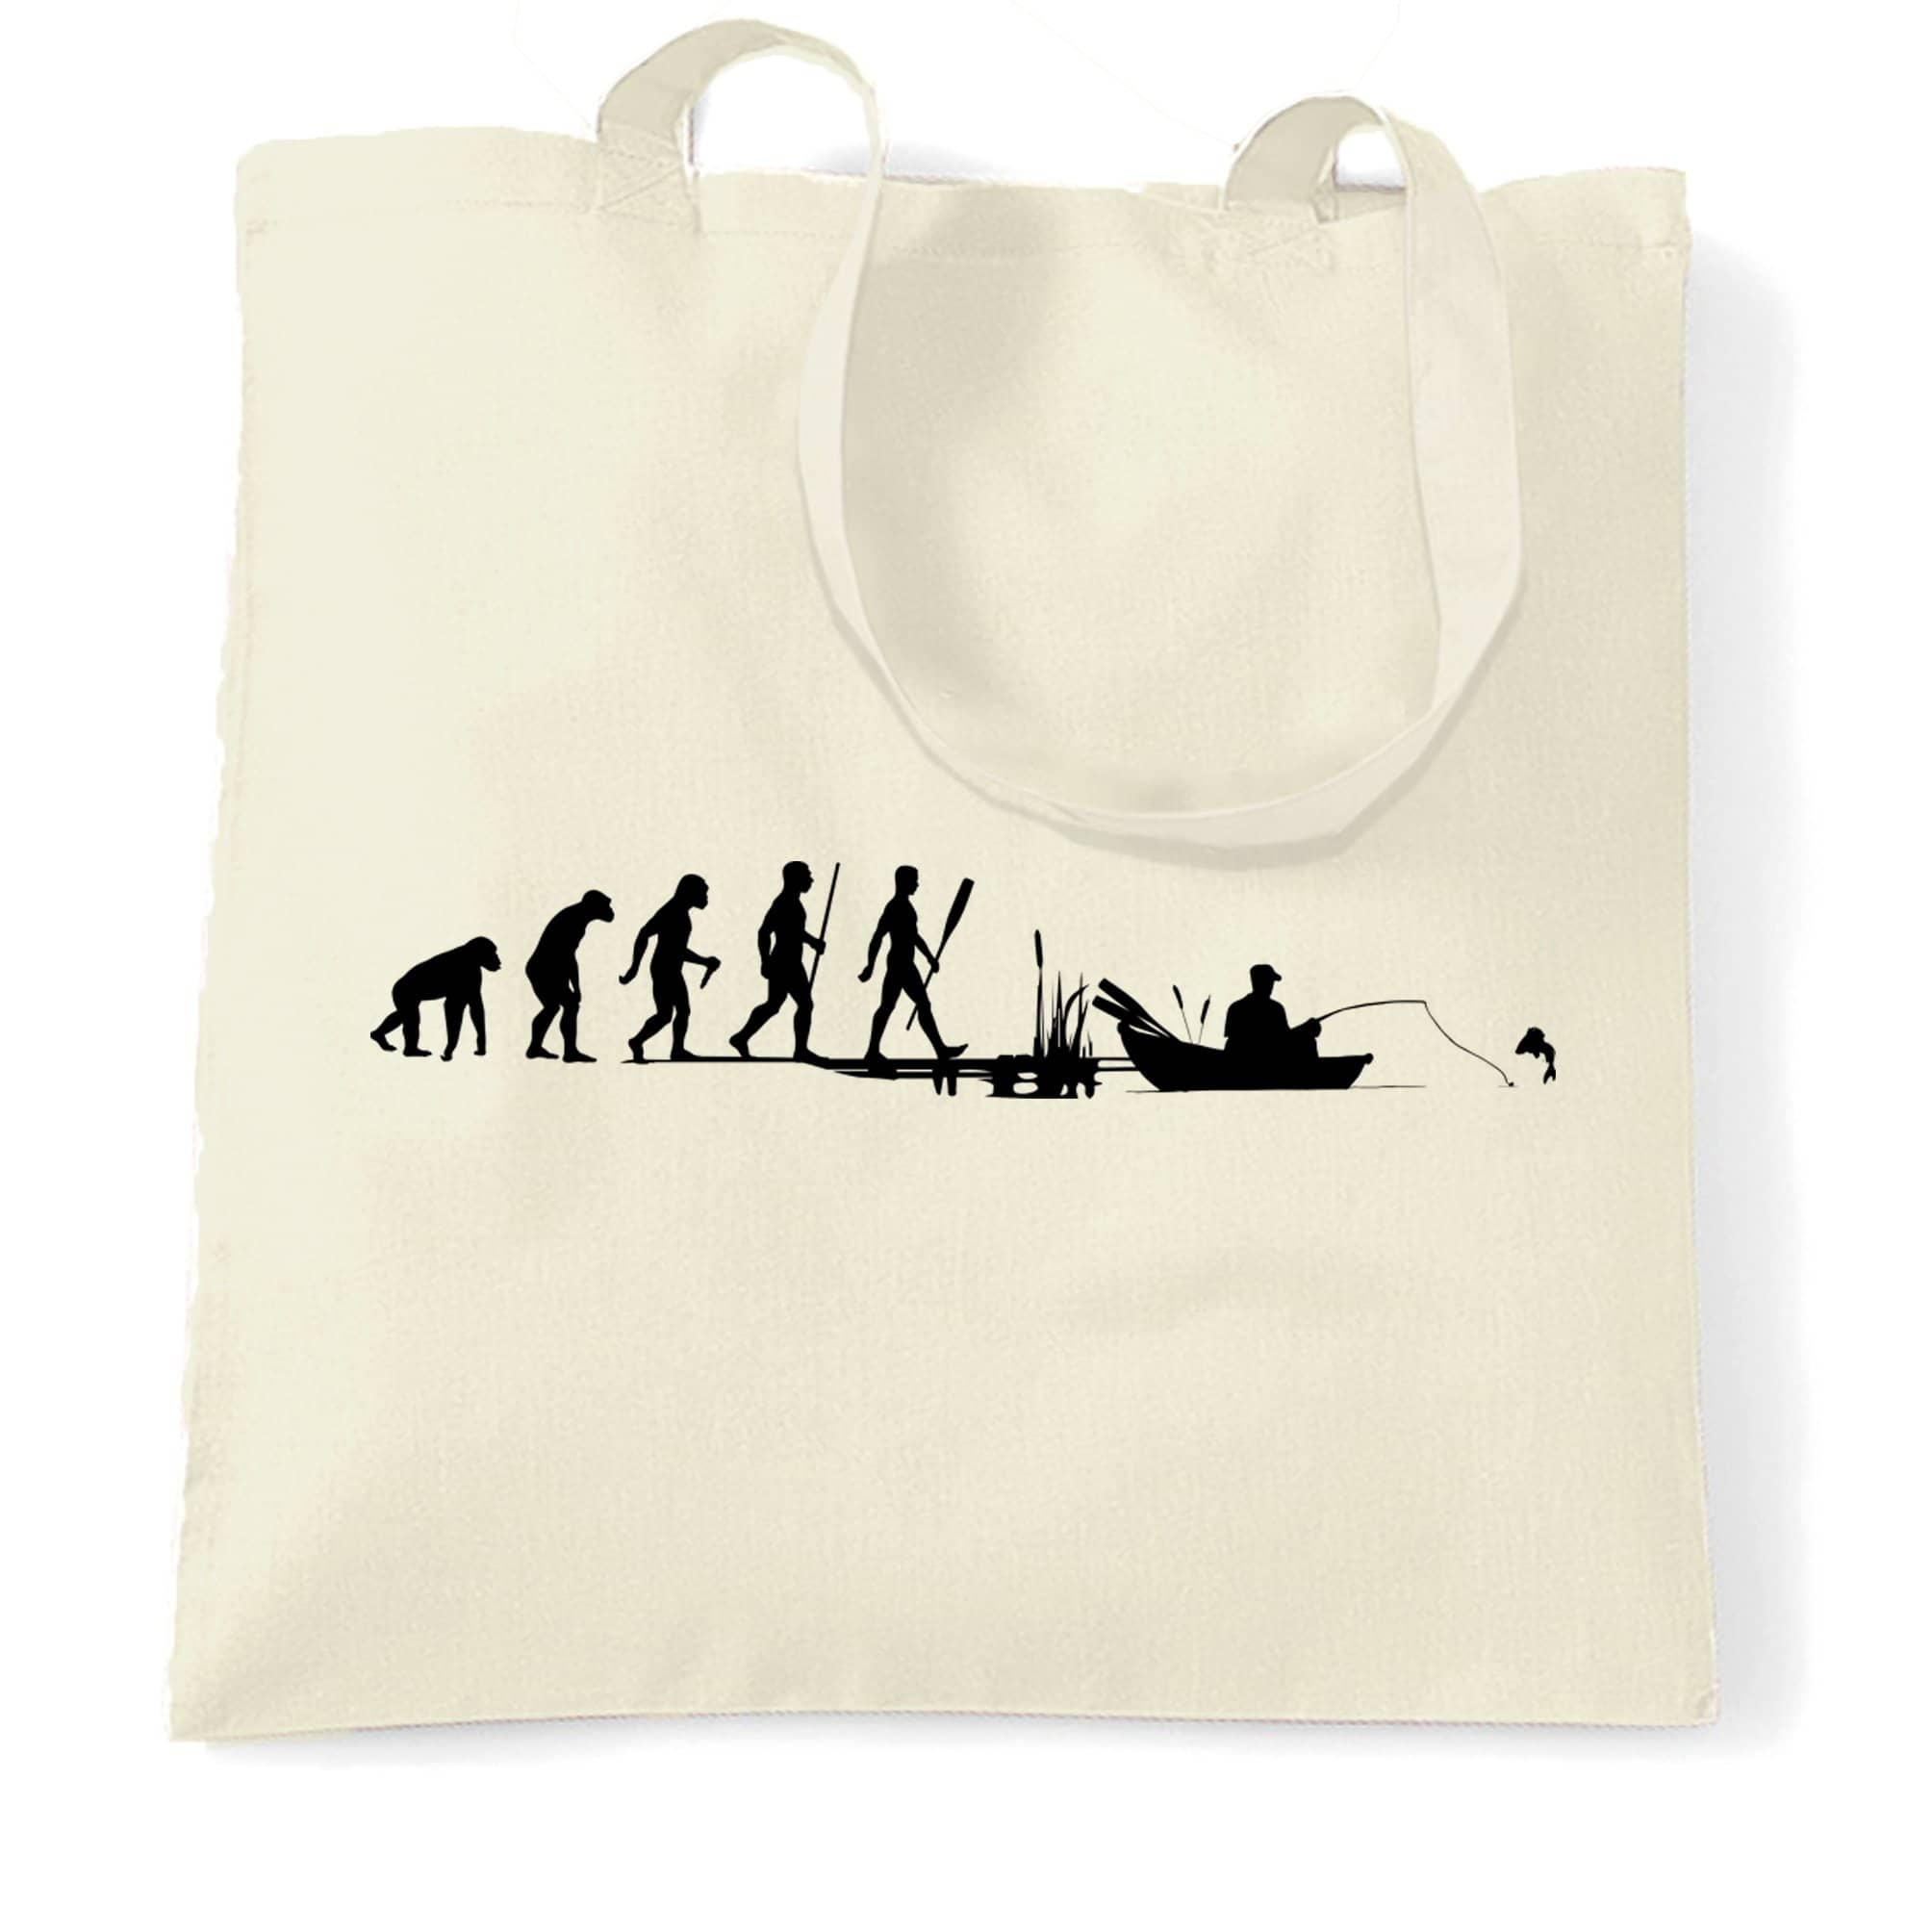 Fishing Tote Bag Evolution Of An Angler